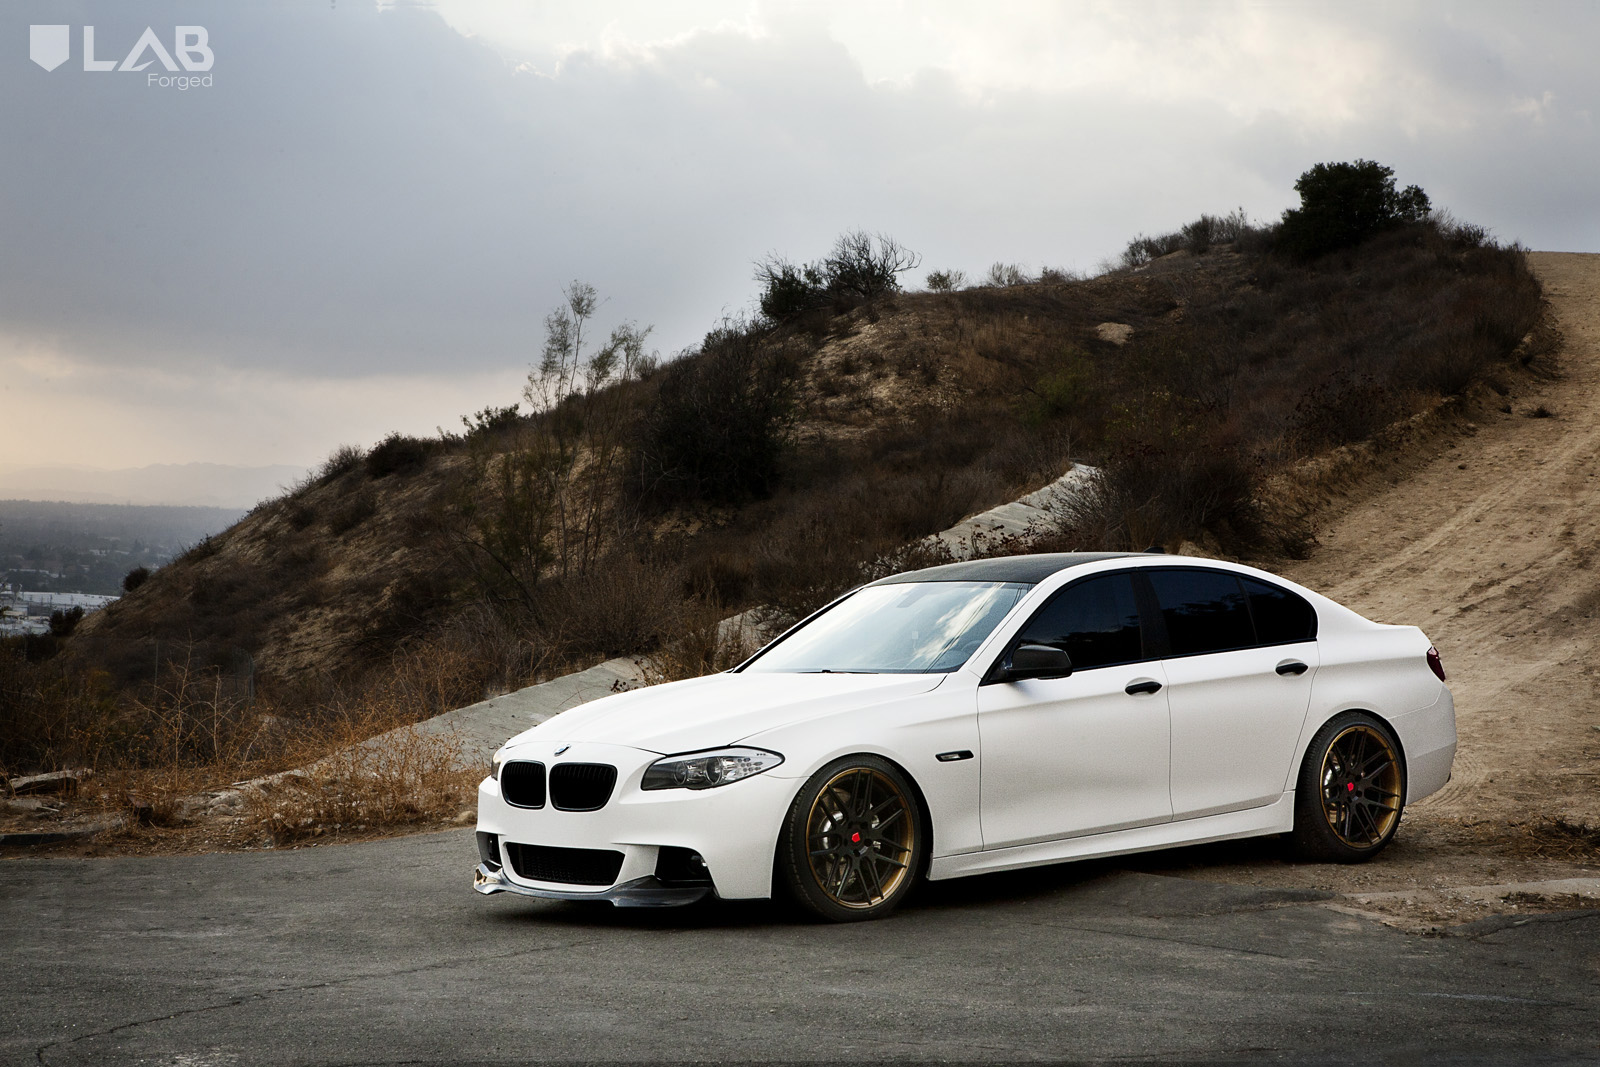 Bmw 535i On Lab Forged Wheels Rides Magazine